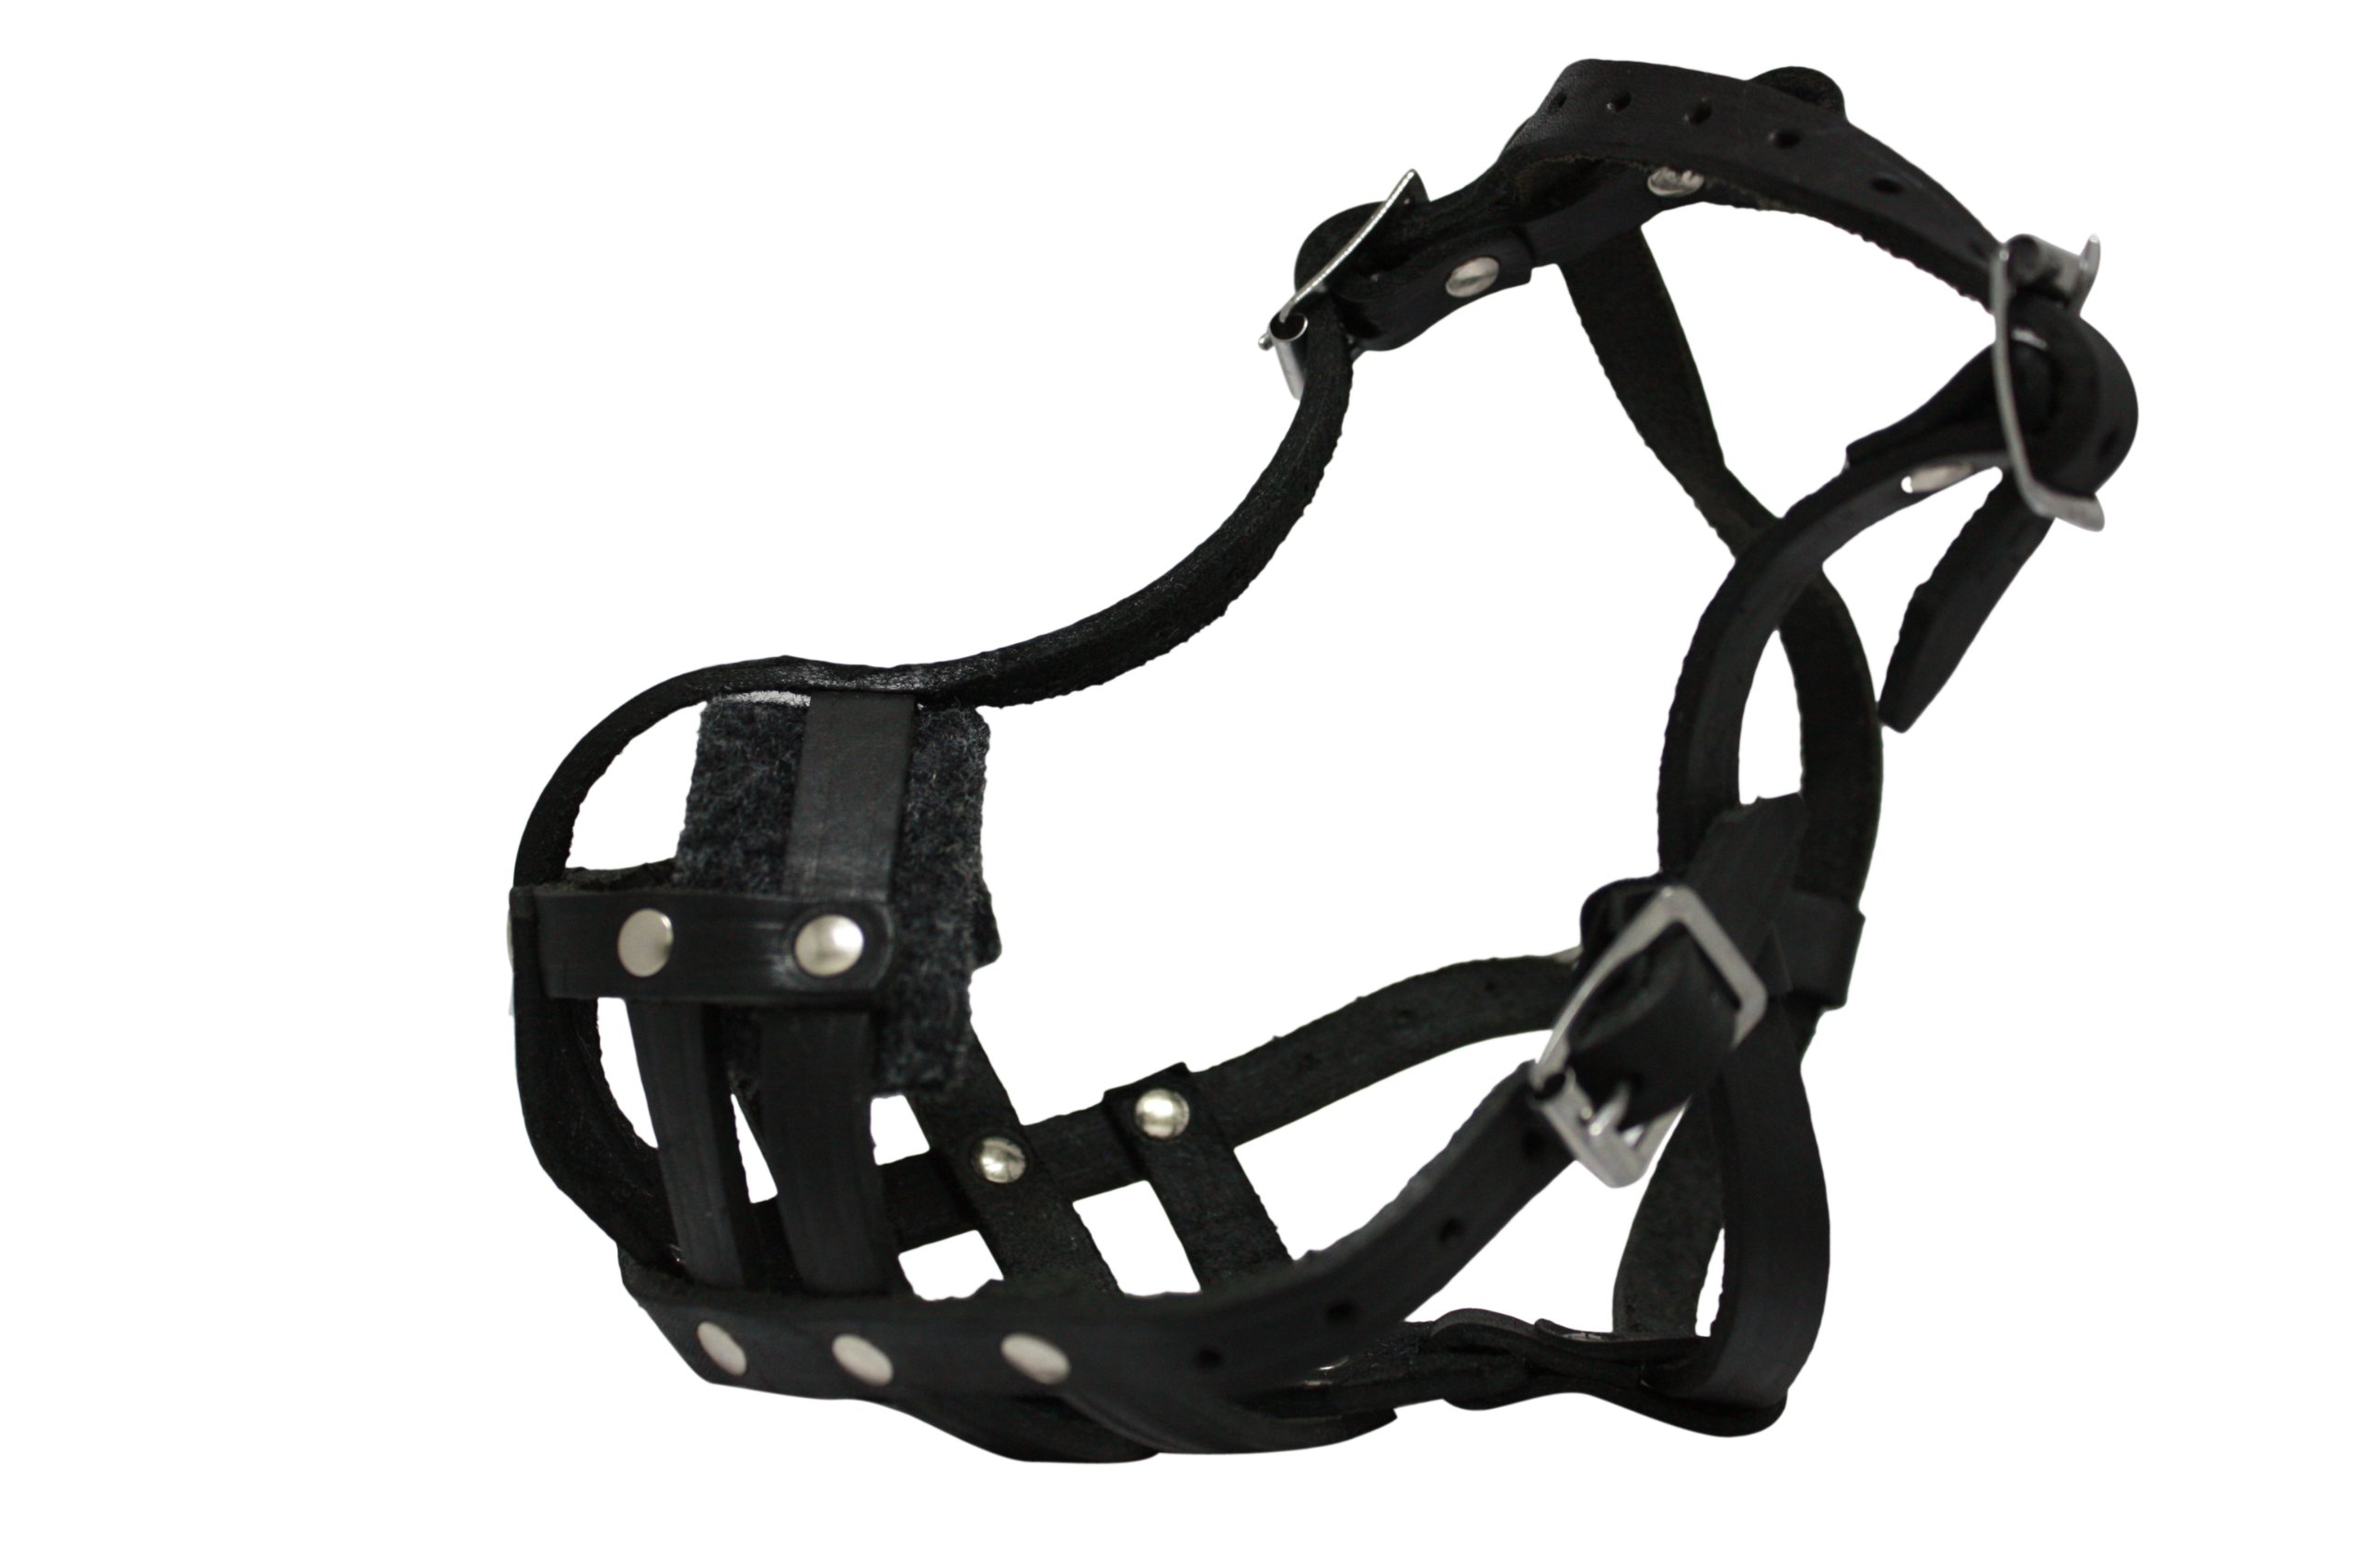 Leather Basket Muzzle (Boston). BM1, Black. 9'' circumference, 2'' length. Best fits breeds like French Bulldog, Pug, Boston Terrier.